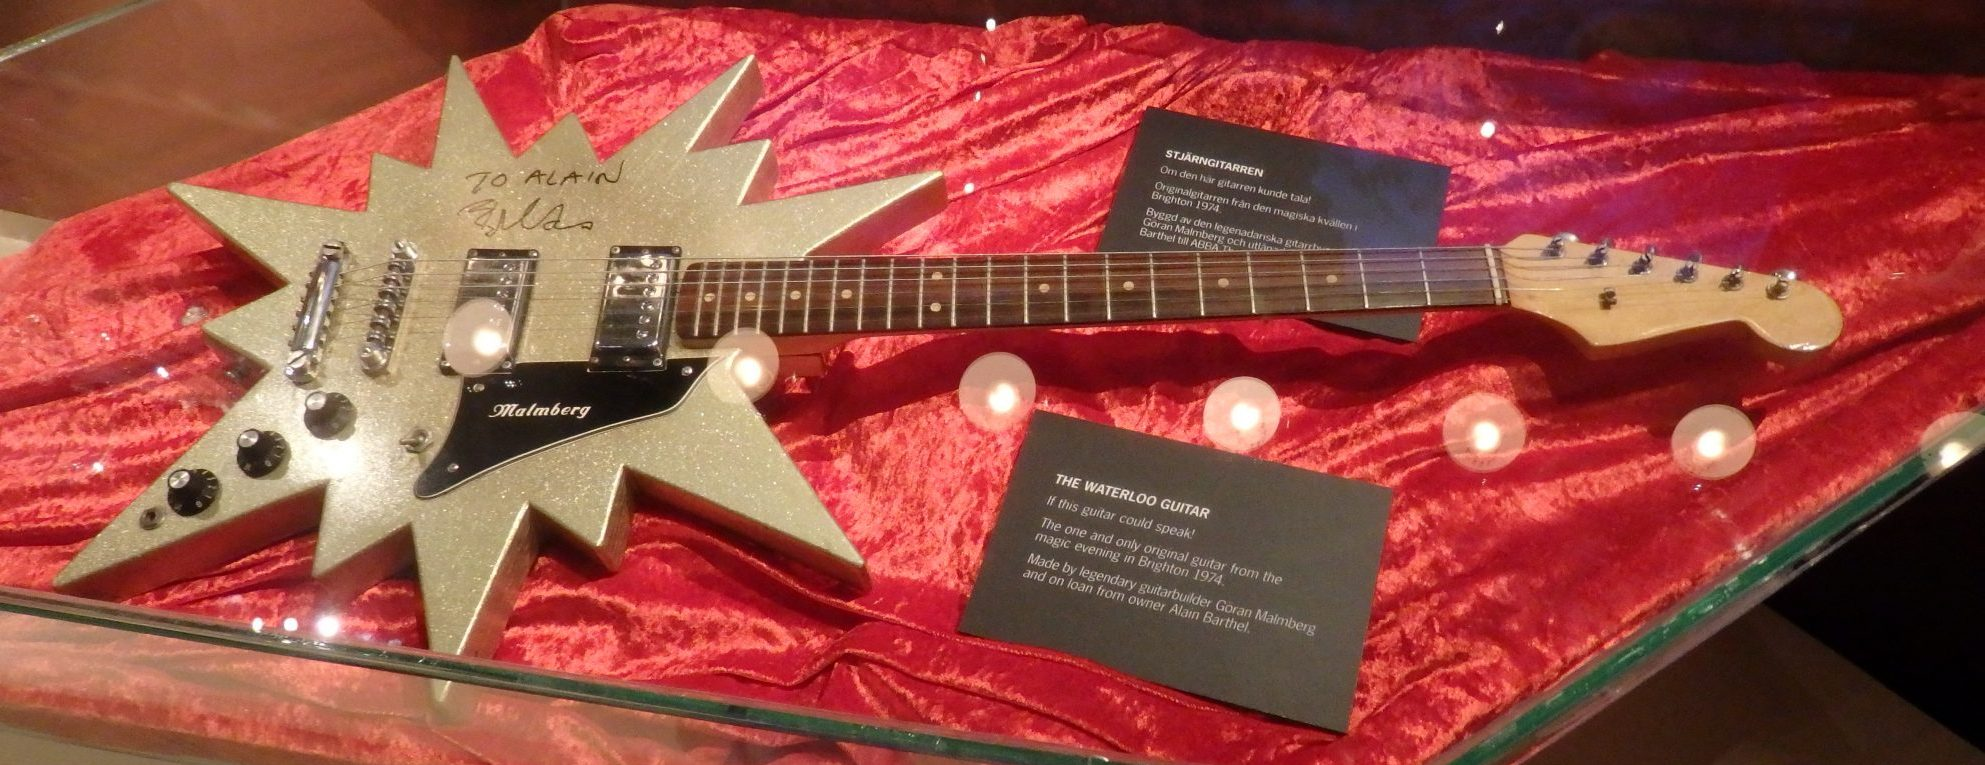 the guitar from the Eurovision performance